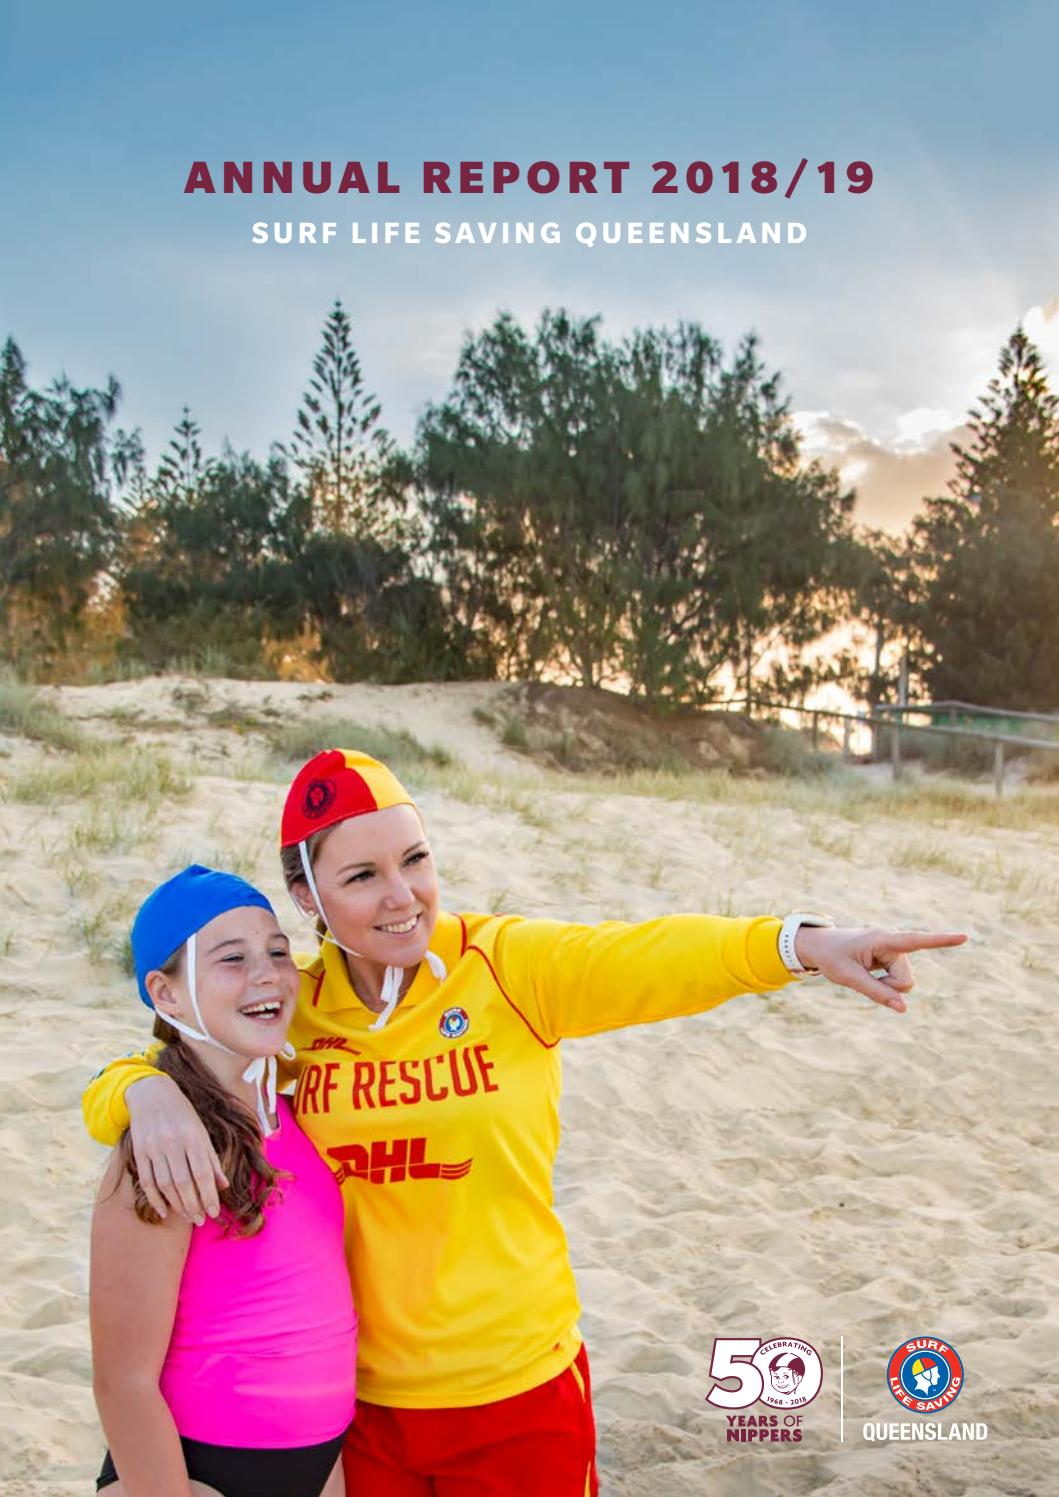 2018/19 Annual Report by Surf Life Saving Queensland - issuu